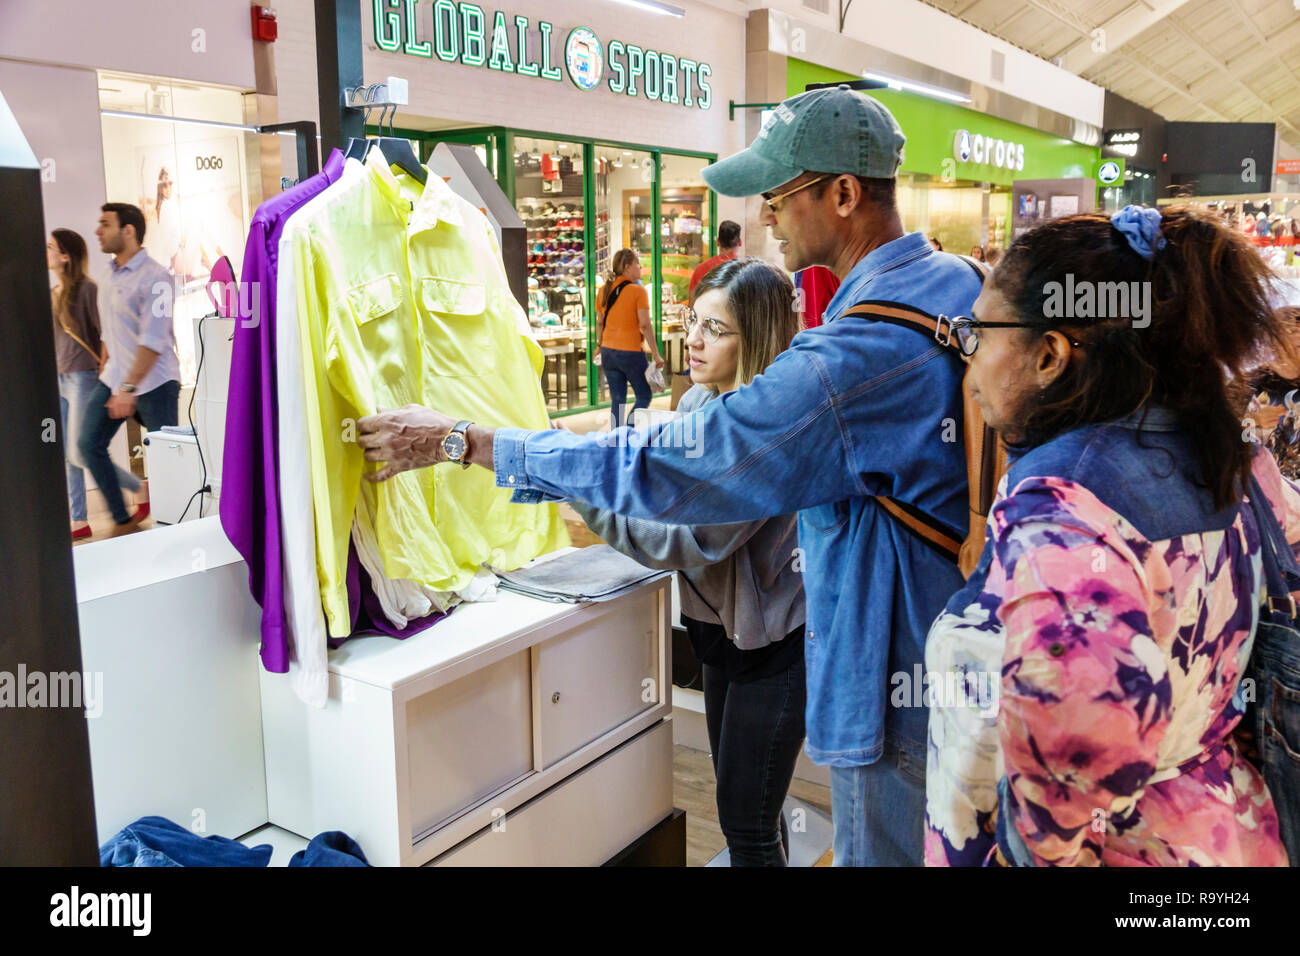 Fort Ft. Lauderdale Florida Sunrise Sawgrass Mills Mall shopping kiosk display sale shirts man woman looking - Stock Image